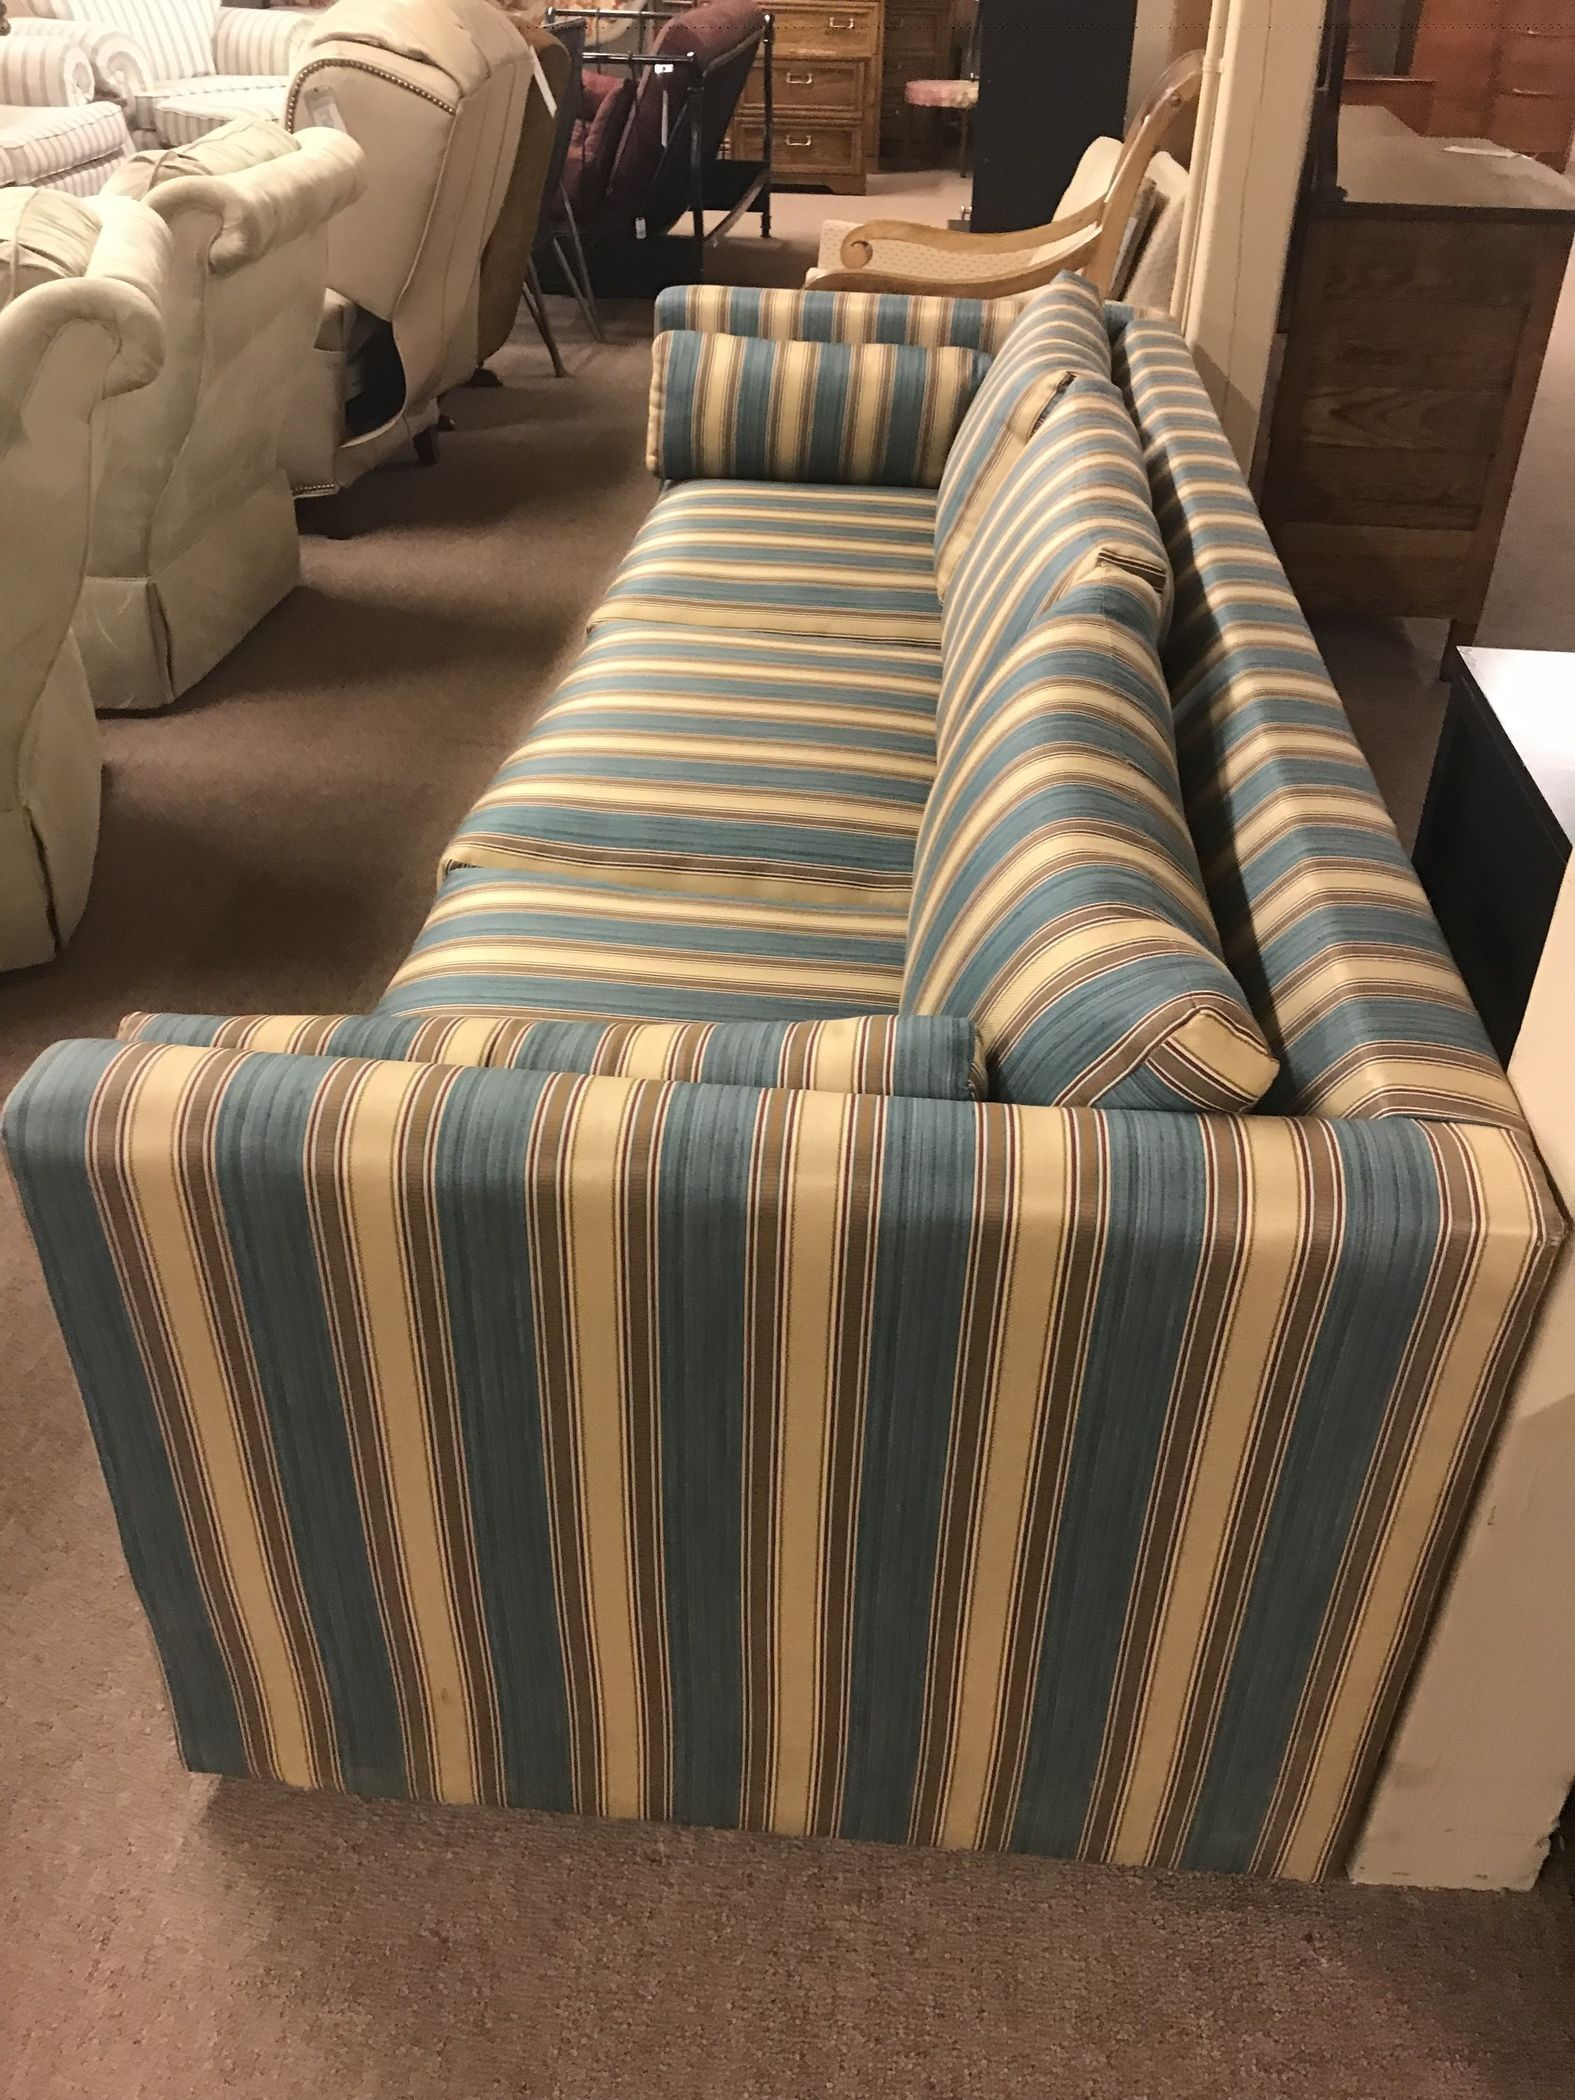 Blue & Cream Striped Sofa   Delmarva Furniture Consignment Inside Striped Sofas And Chairs (View 14 of 15)